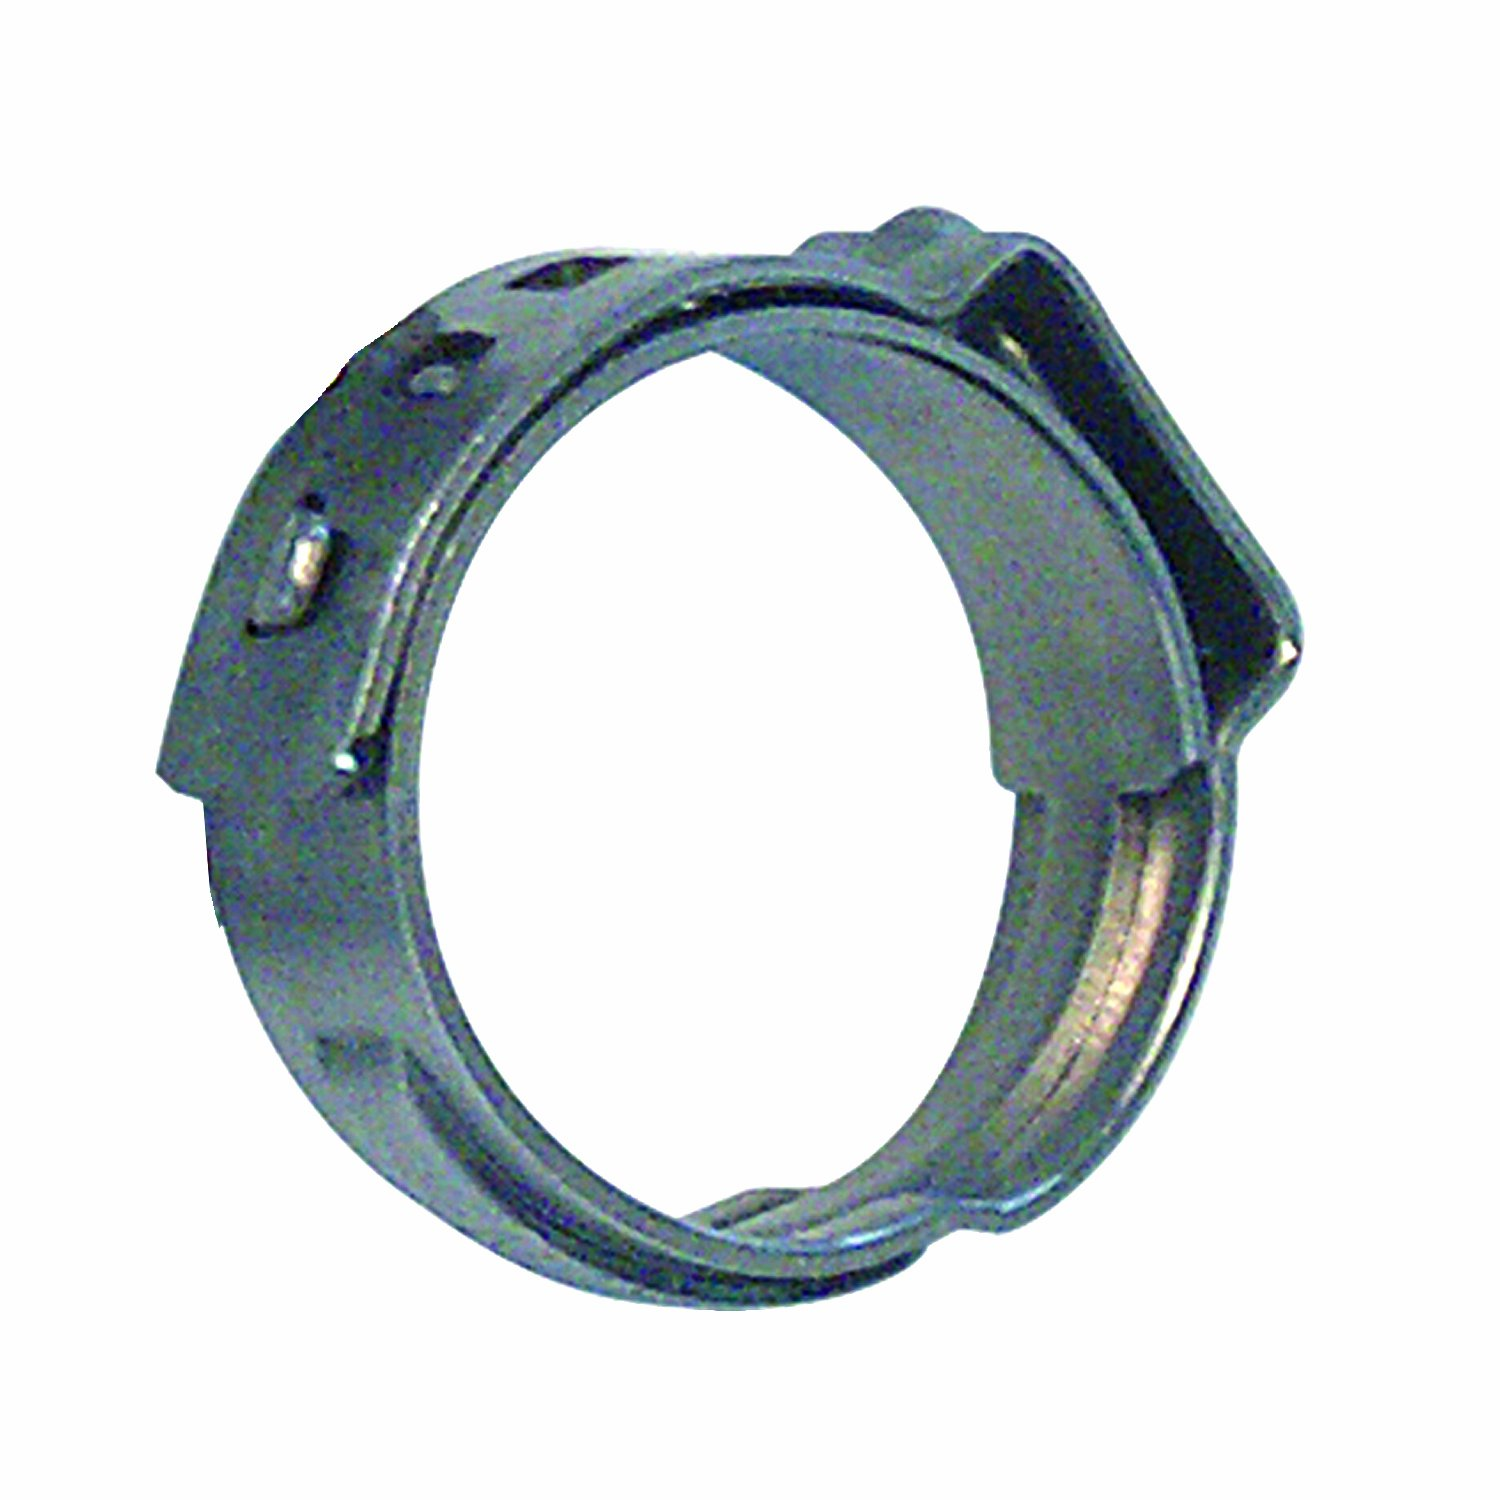 Watts P-572 1/2-Inch Stainless Steel Cinch Clamp for 1/2-Inch PEX Pipe, 10-Pack